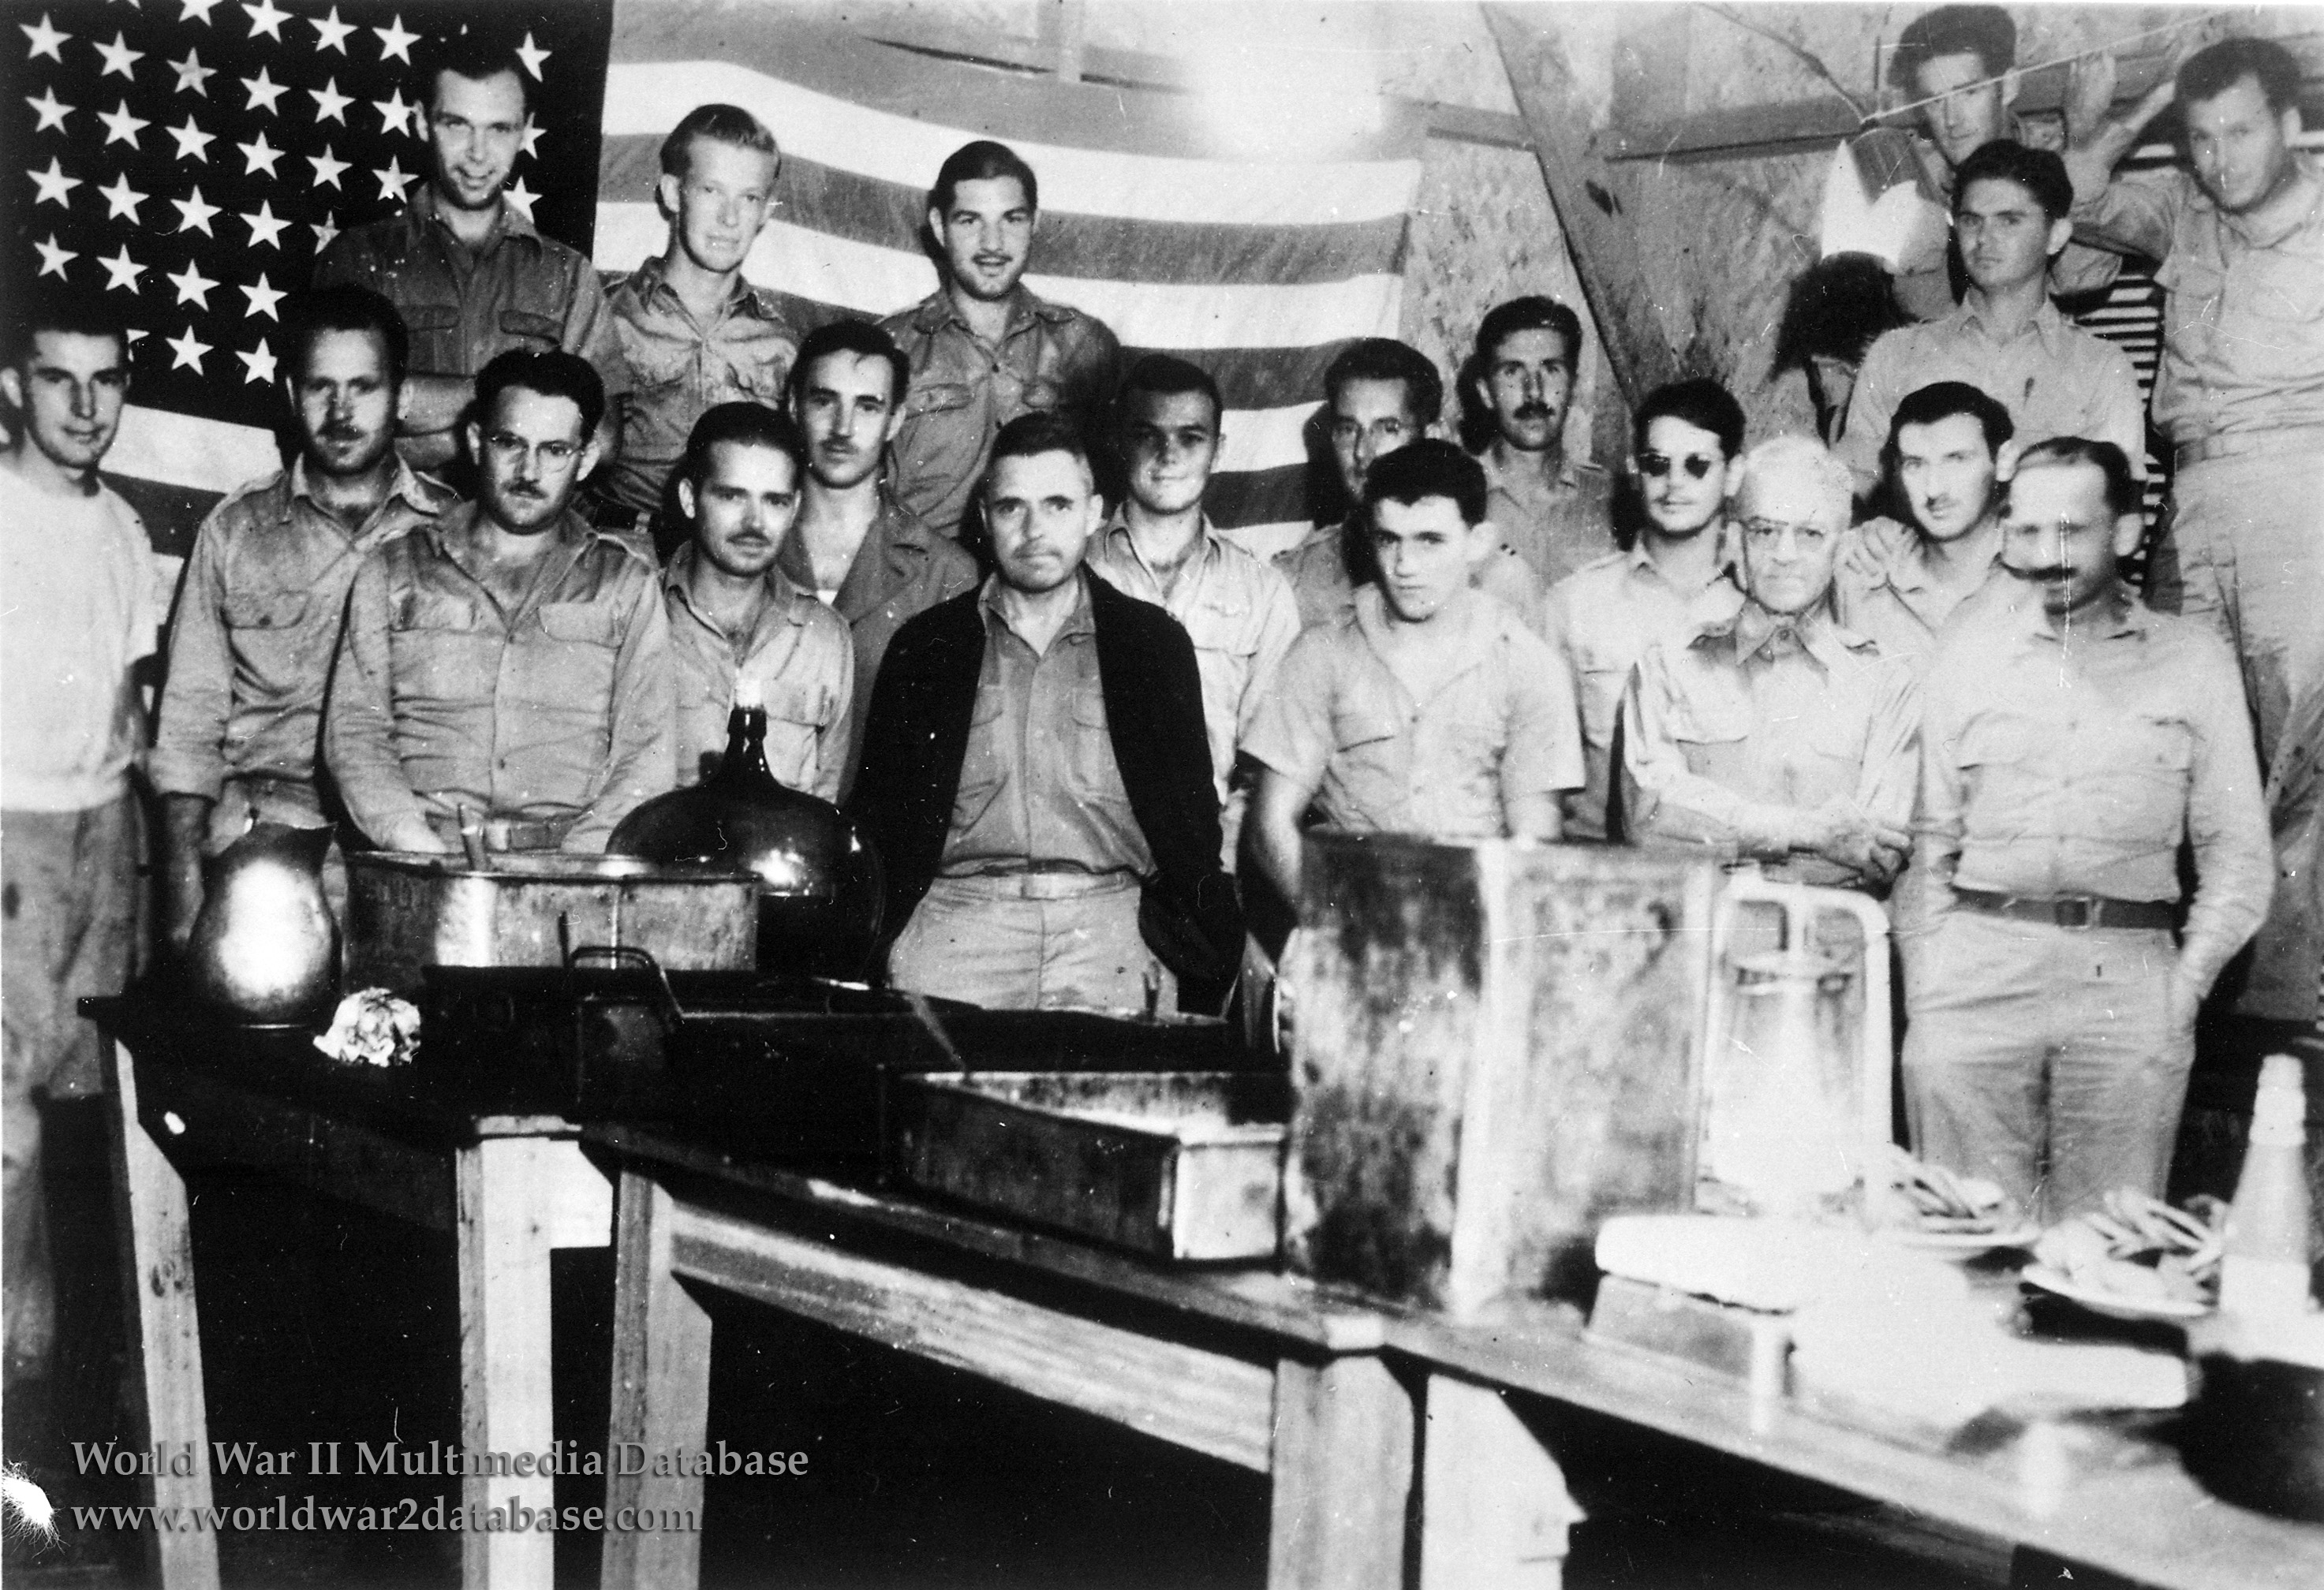 American Prisoners Of War Celebrate The Fourth Of July At